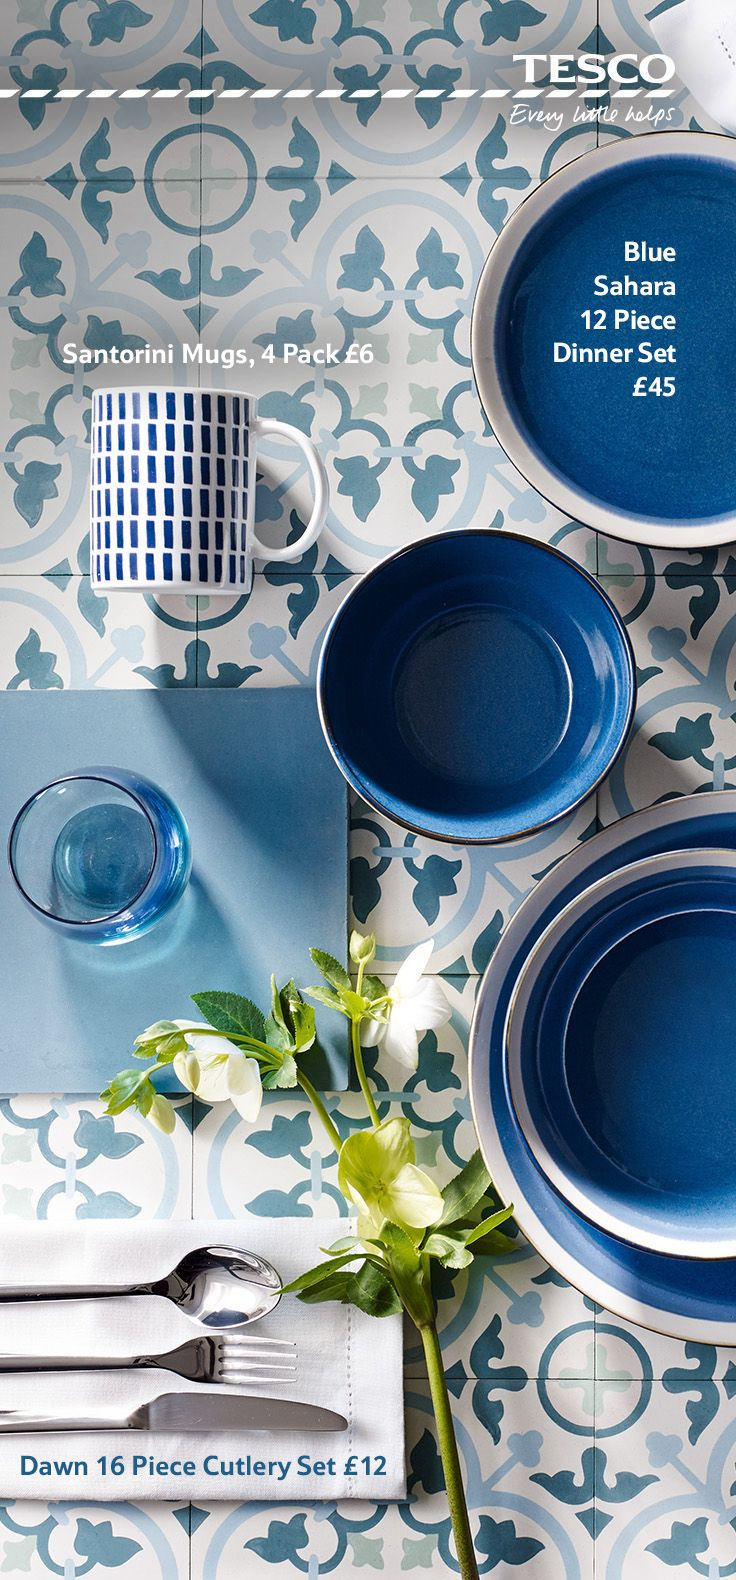 Refresh your kitchen for summer with a range of gorgeous blue hues ...